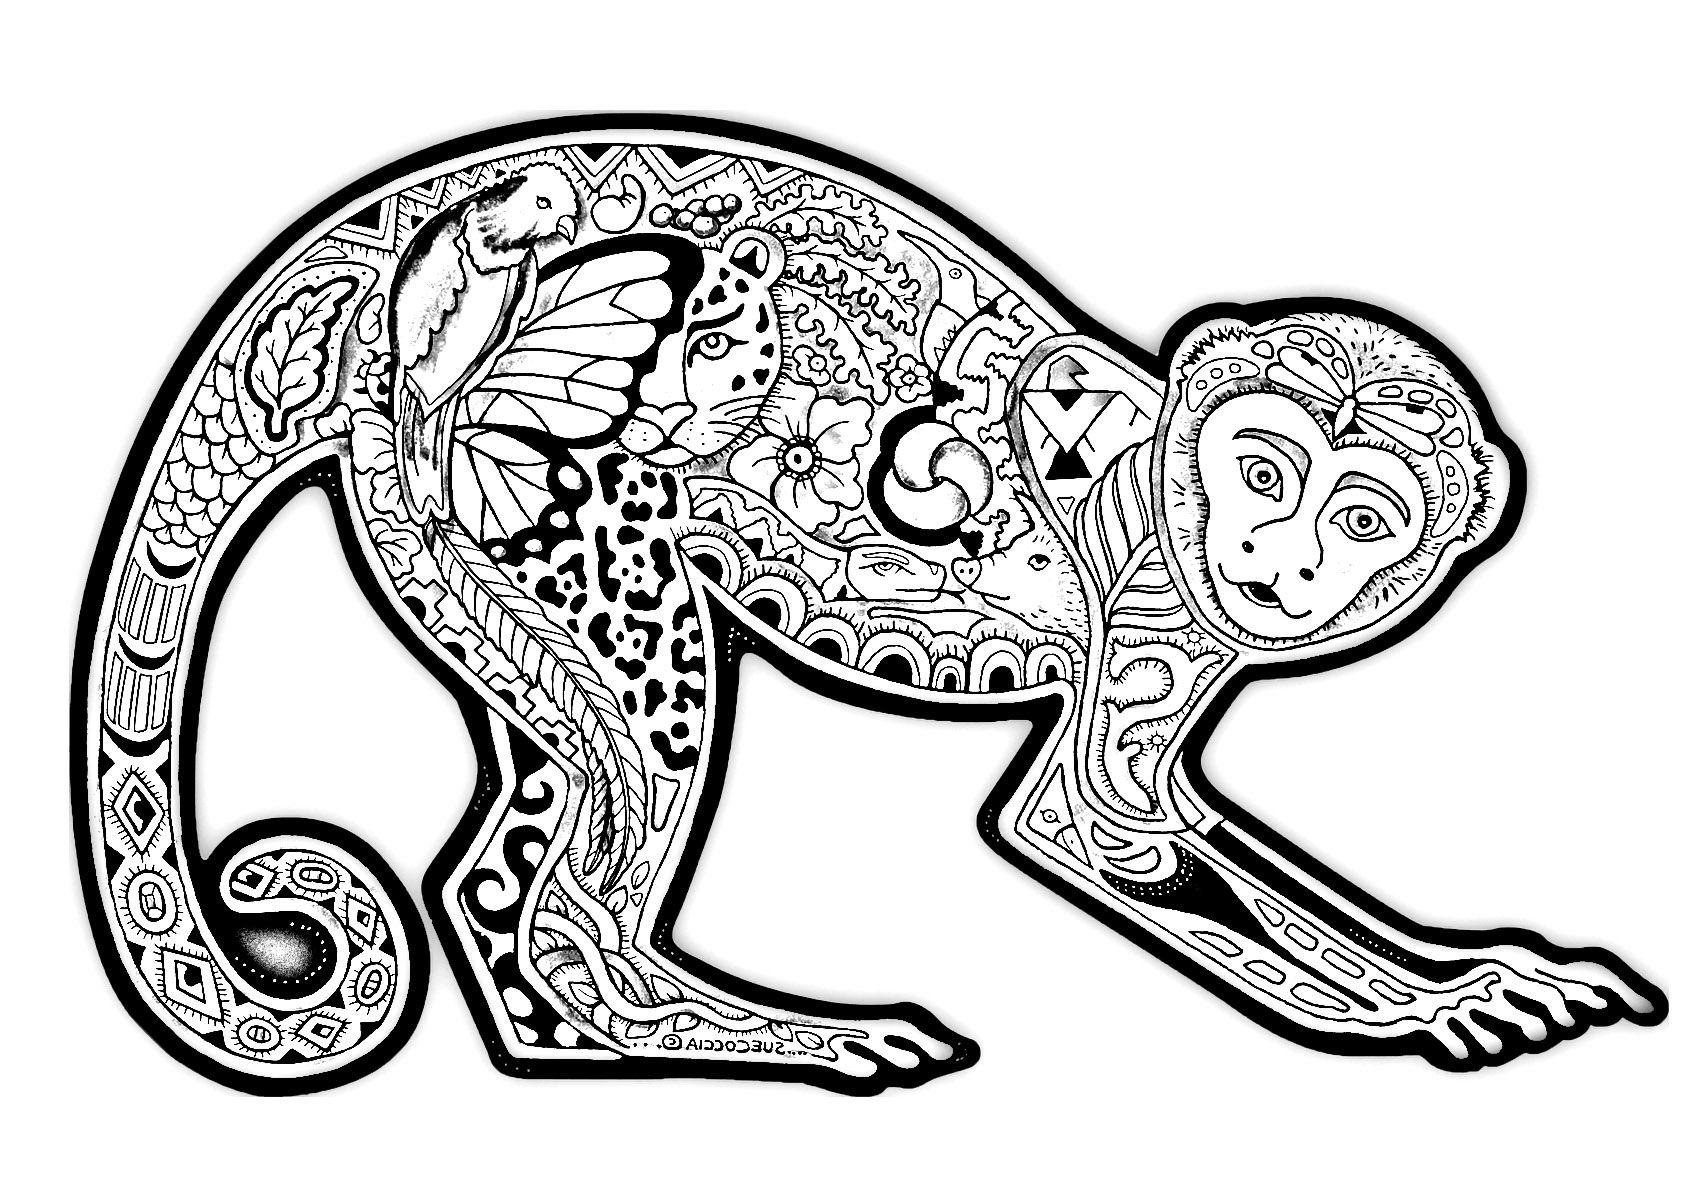 Free Coloring Page Coloring Difficult Monkey A Coloring Page With A